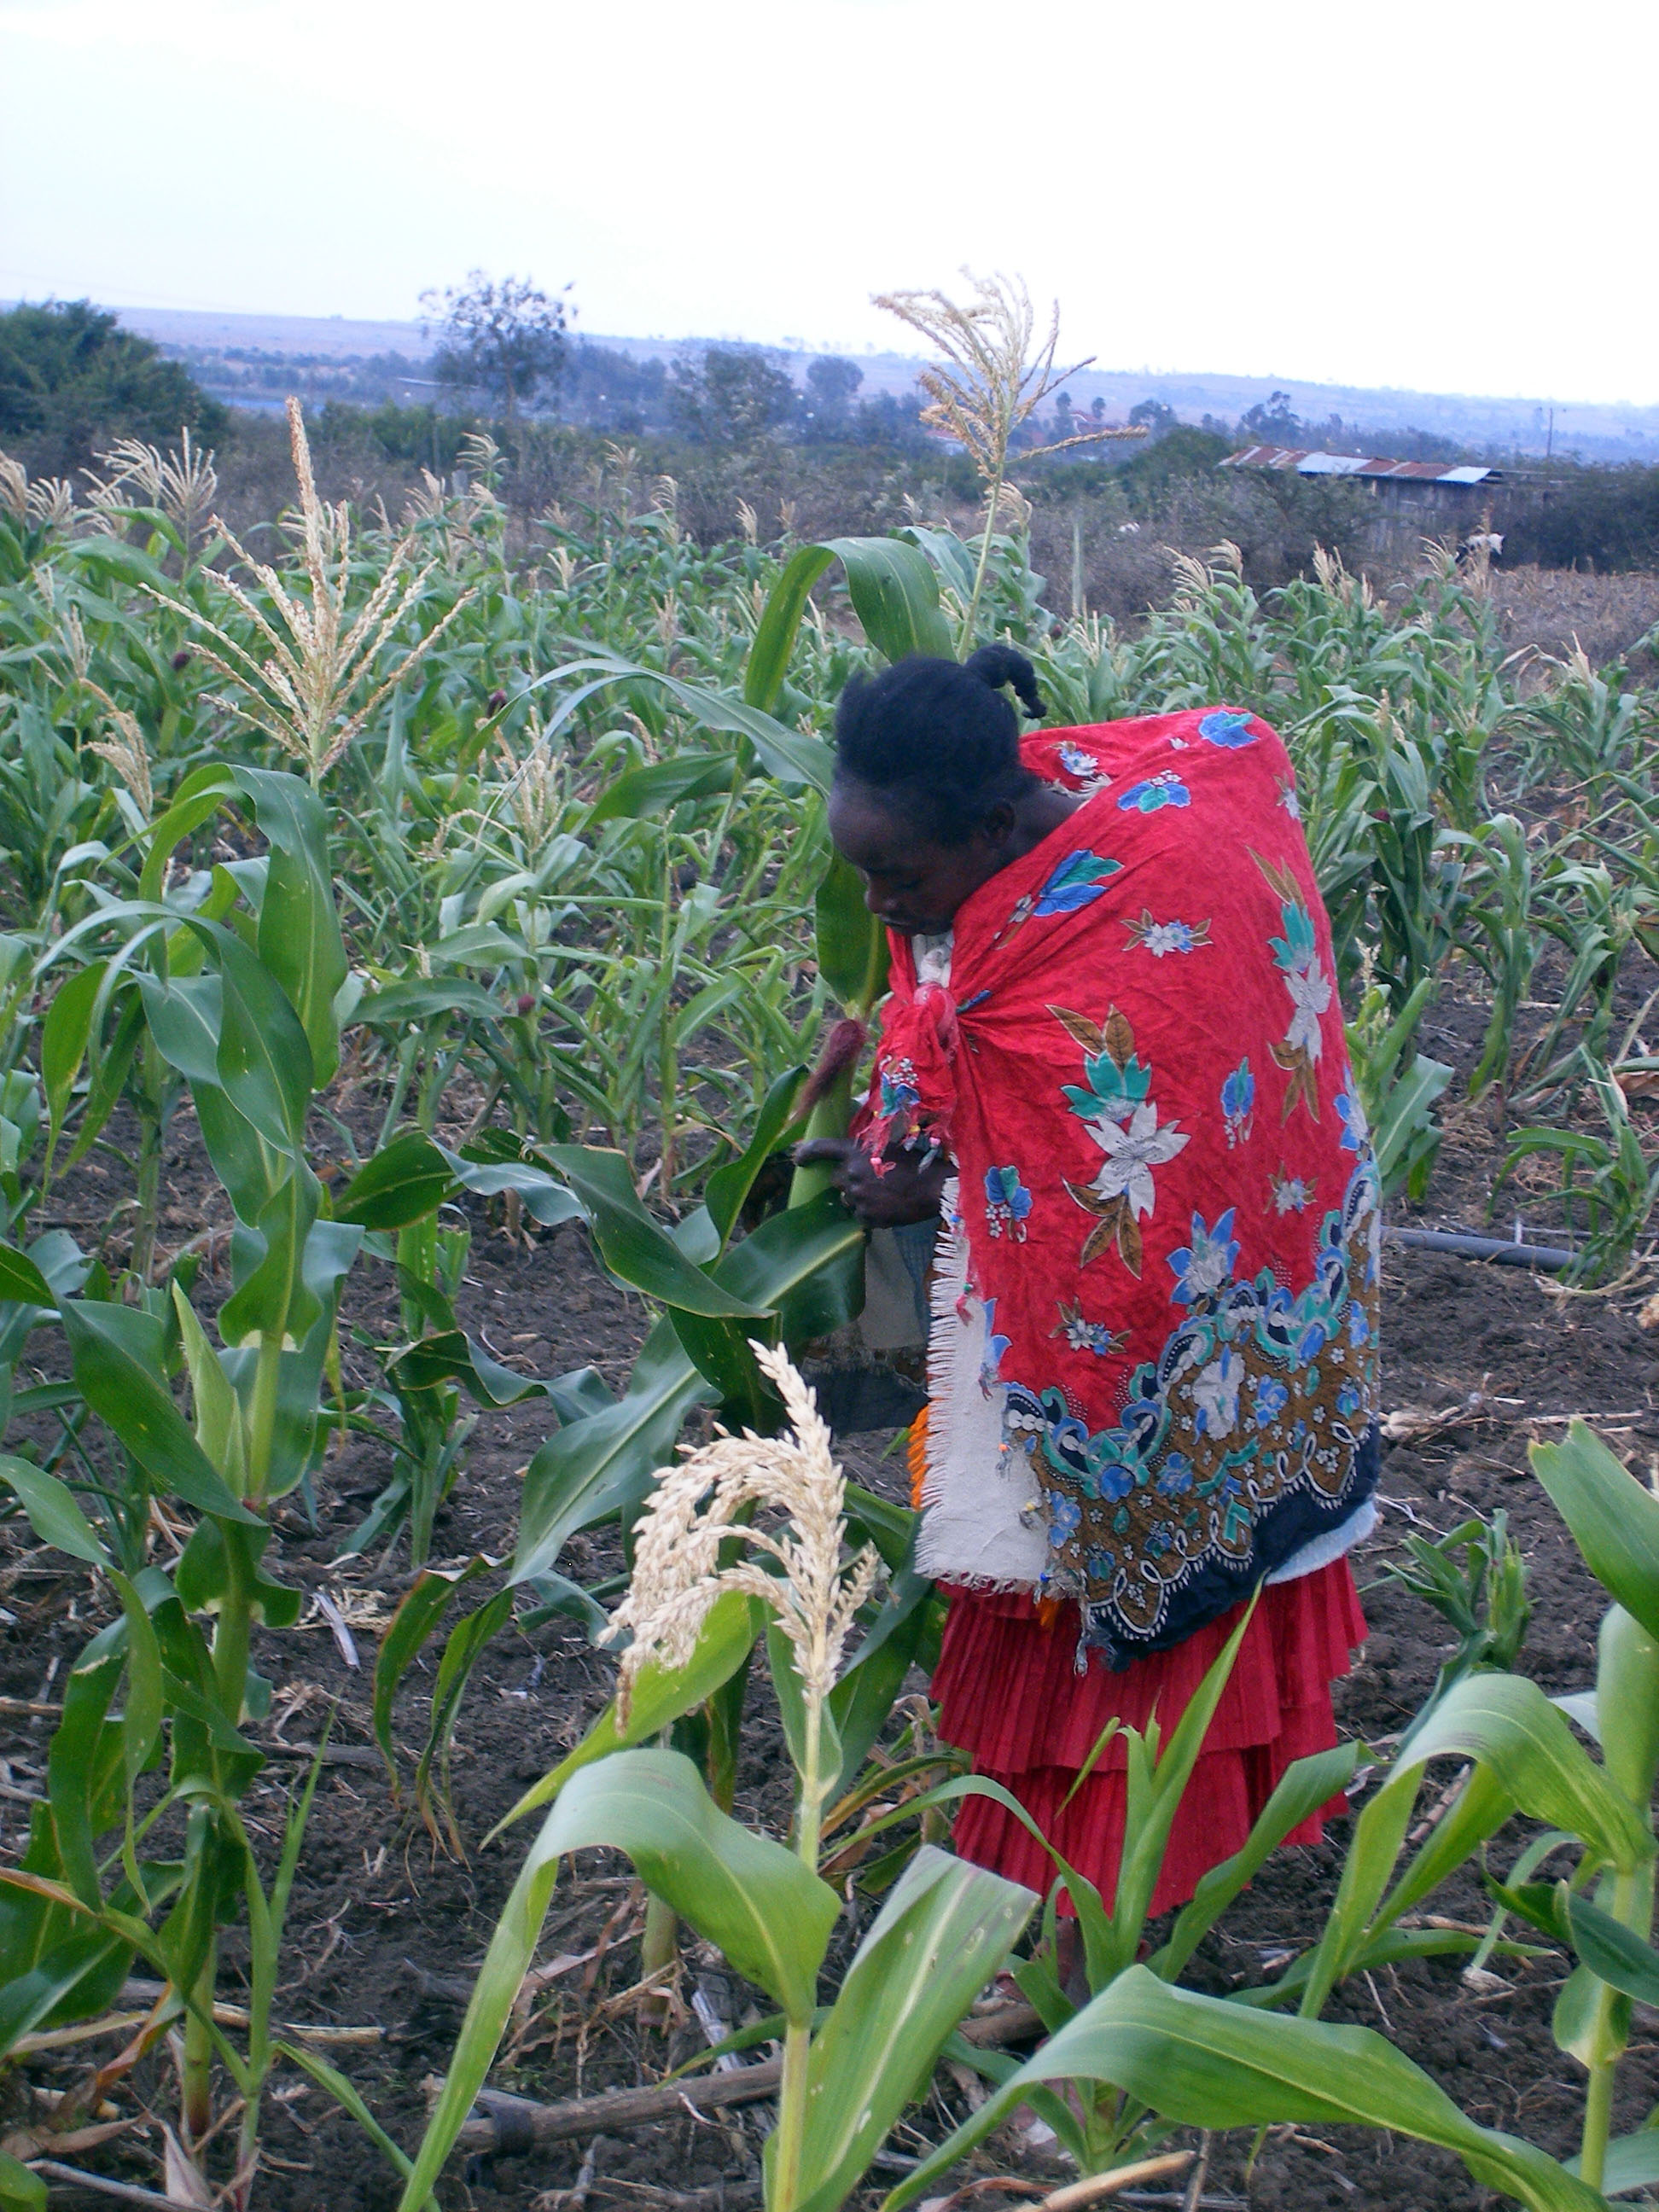 Ruth Wangechi examines her crop in Thung'ari village. The maize failed at the silking stage because of poor rains.